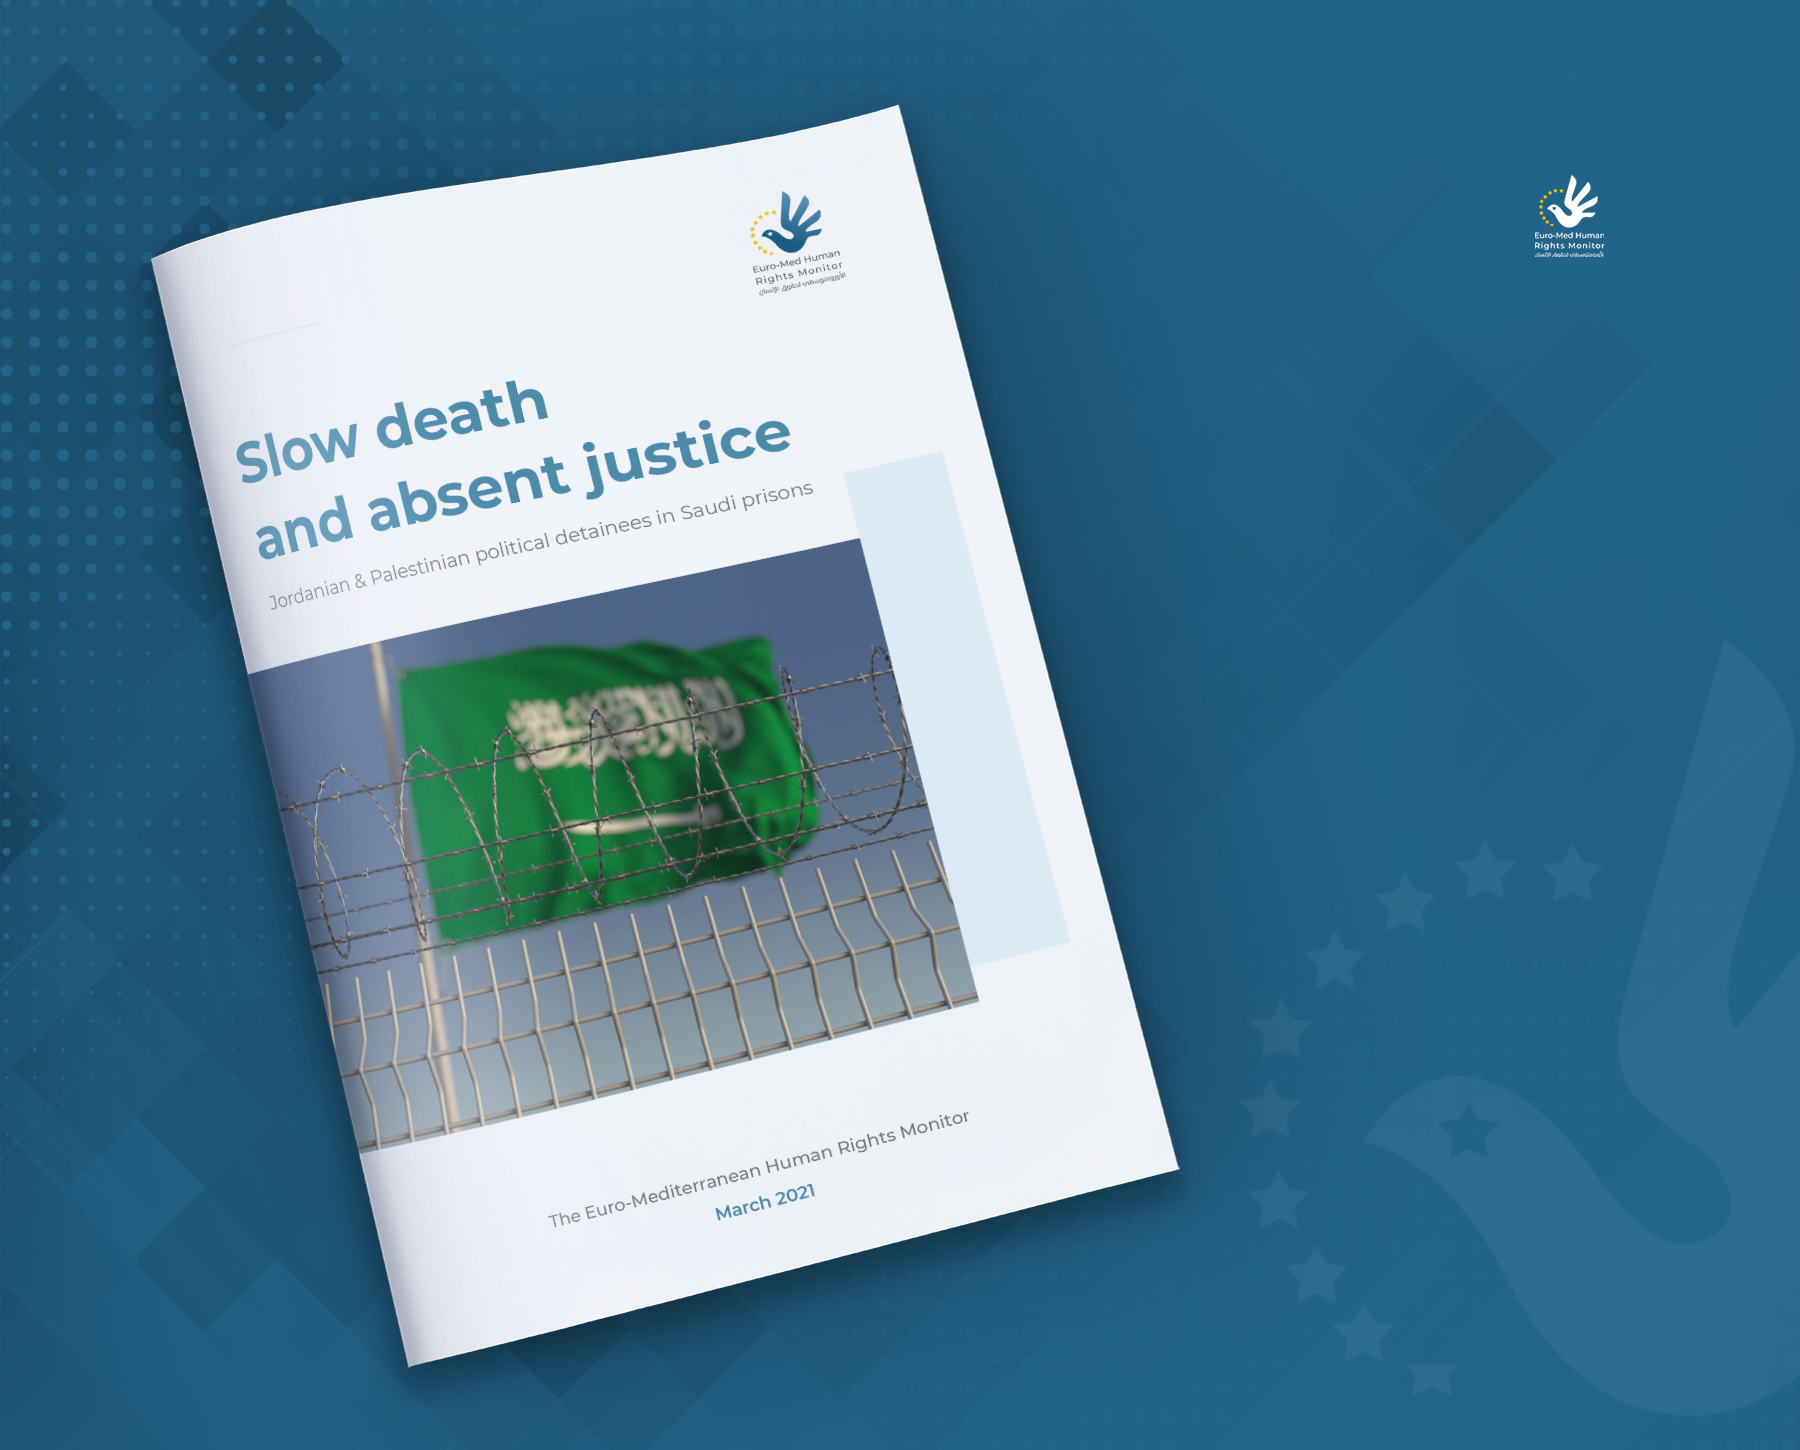 New report: Shocking testimonies of Palestinian and Jordanian detainees in Saudi prisons